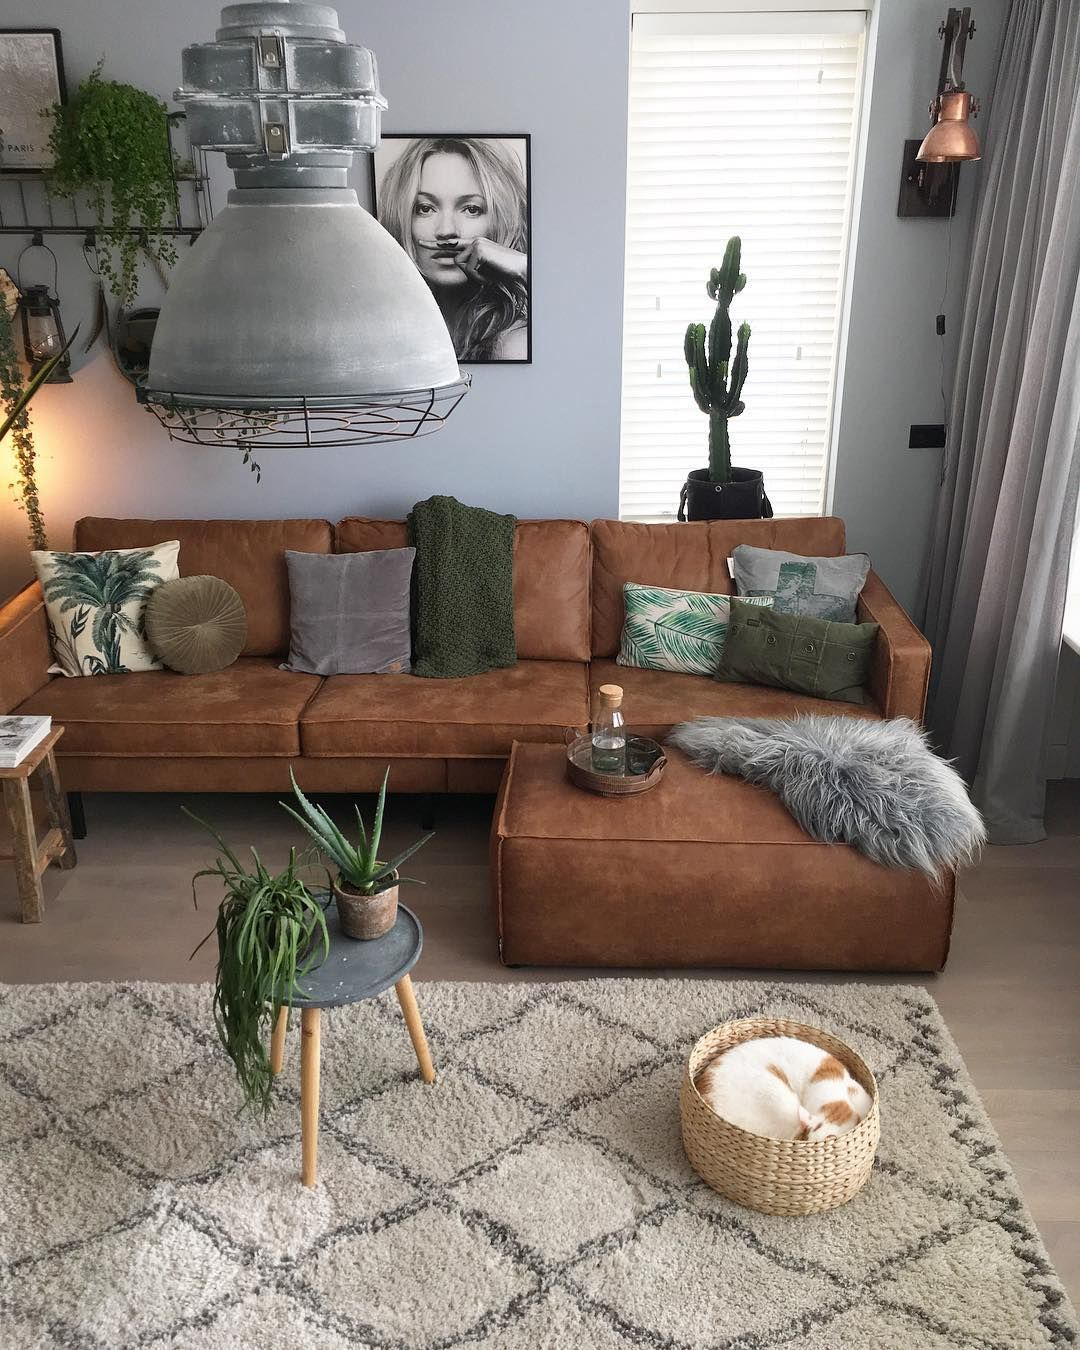 Decorative Matching Living Room: Living Room Design Ideas & Pictures L Homify